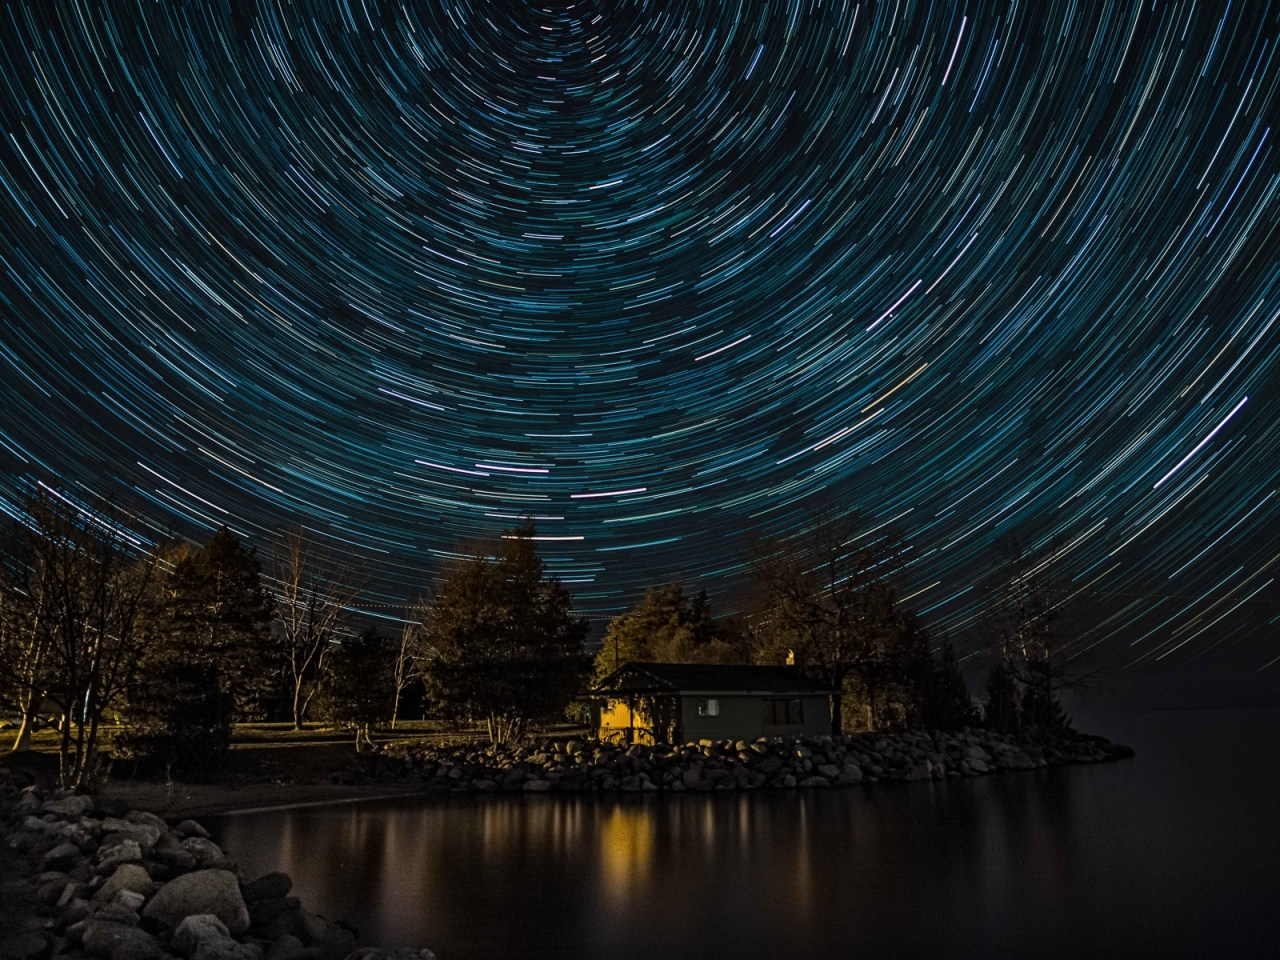 Star Trails  - Winner - Something Different Category - Brian Gibson 2016 Fall Challenge  This is a 35 minute live composite exposure built in camera using 30 second sub-exposures.  I took this from a pier in Lora Bay Park looking north to get circular trails.